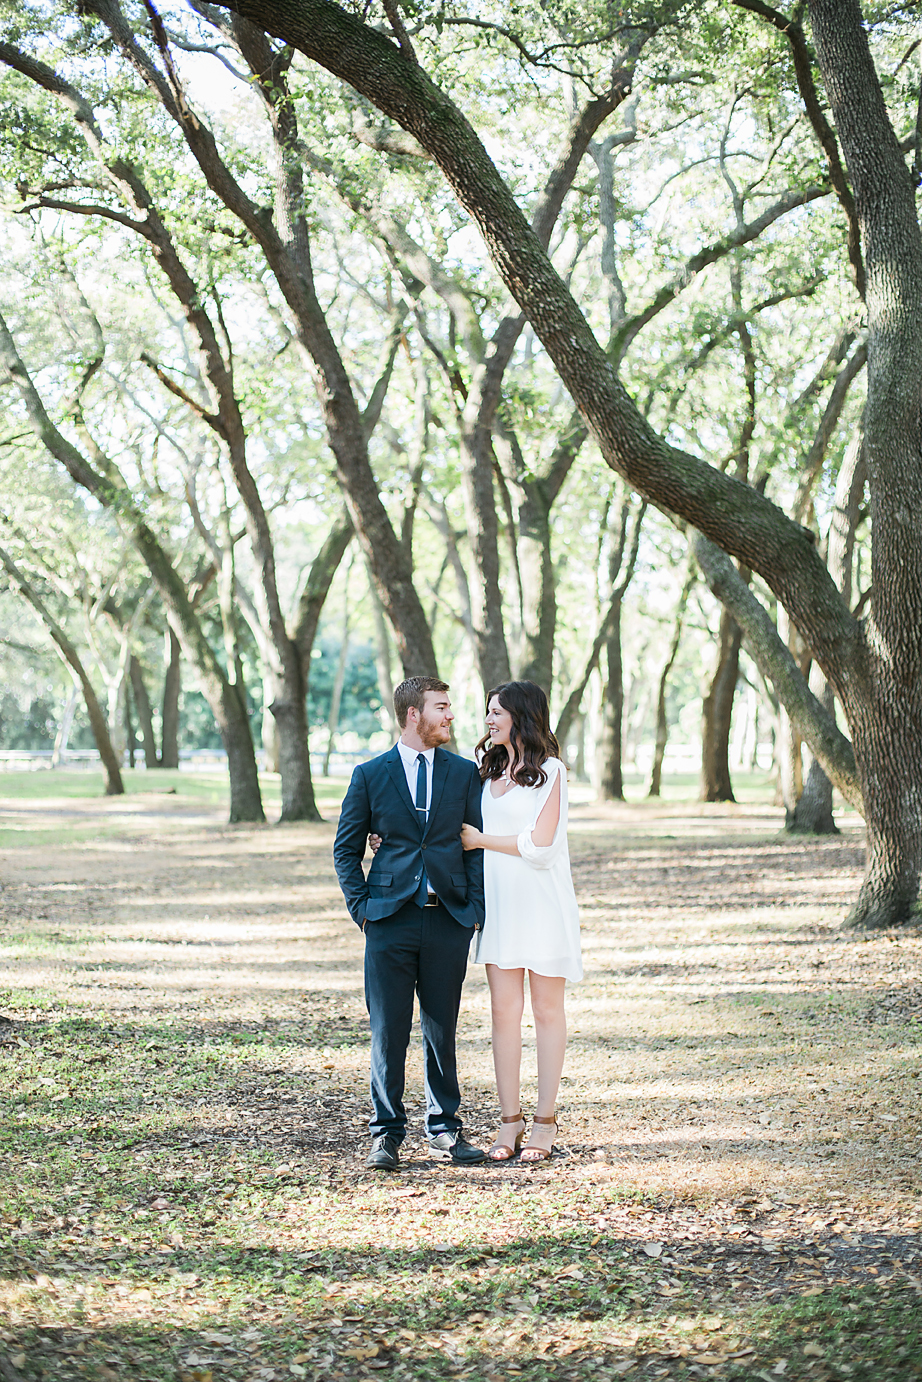 Lauren + Drew - Bradenton Engagement Photography - Sarasota Engagement Photography - Emily & Co7.jpg